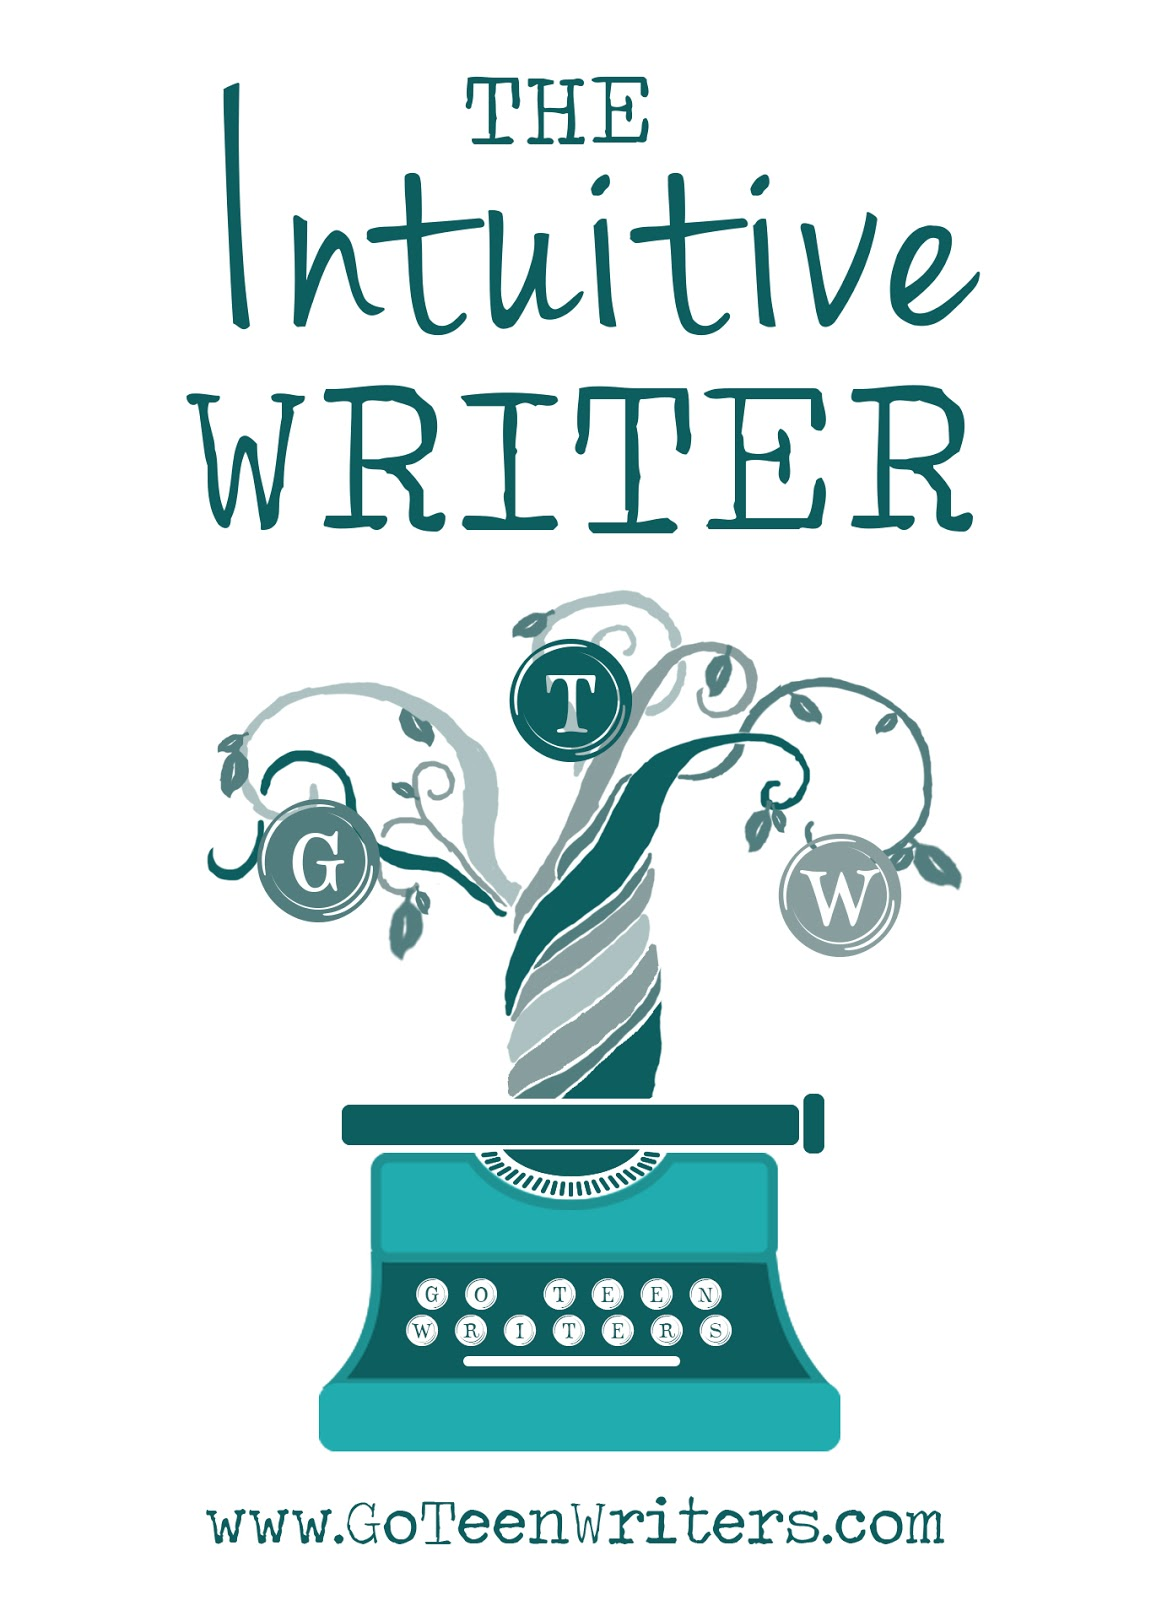 Guest Post Up Today on Writing